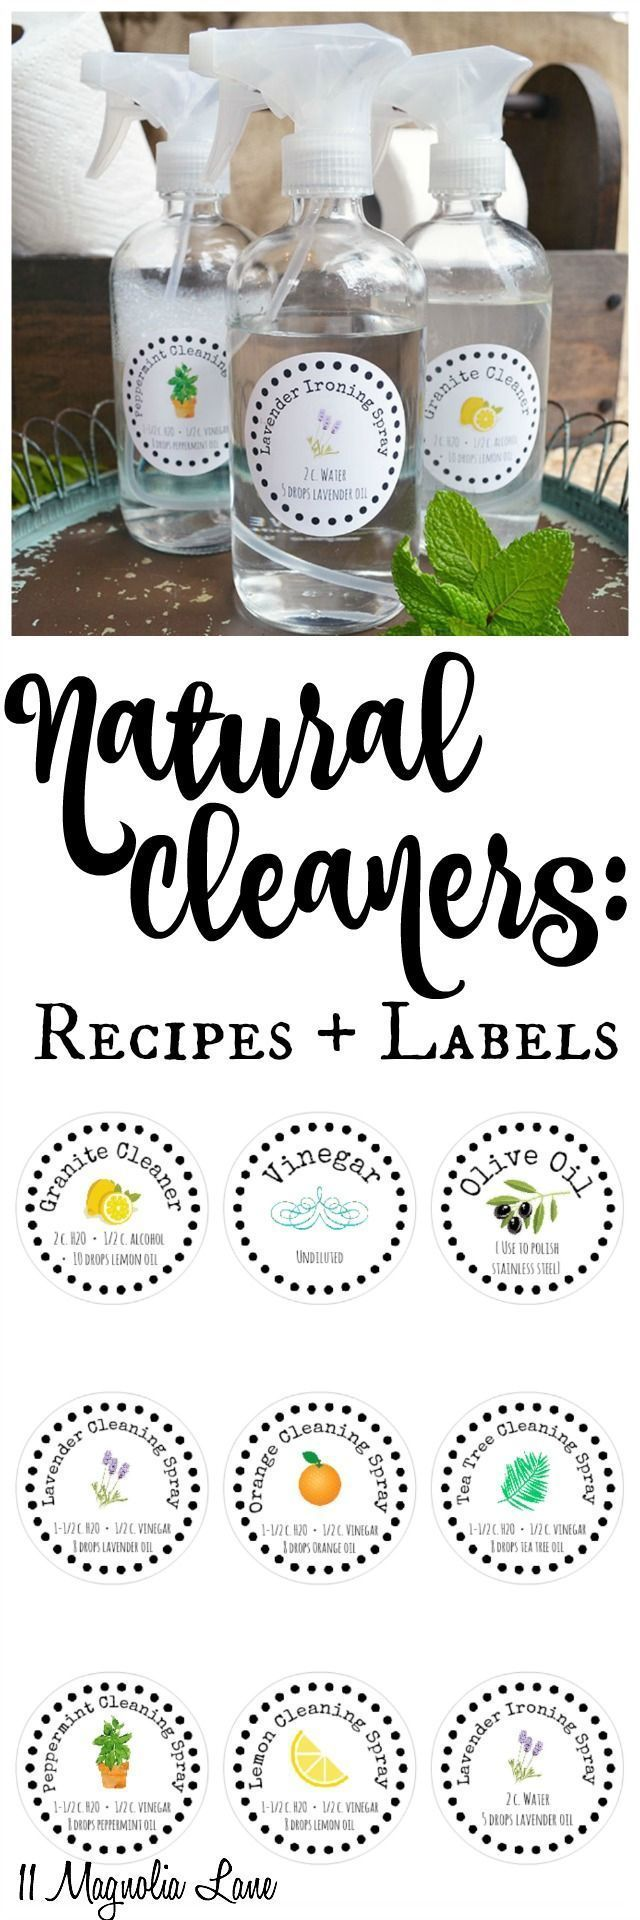 Spring cleaning tips, including natural cleaning solution recipes using essential oils and free printable labels for your cleaners (peppermint, lemon, tea tea, lavender, orange, vinegar, olive oil)